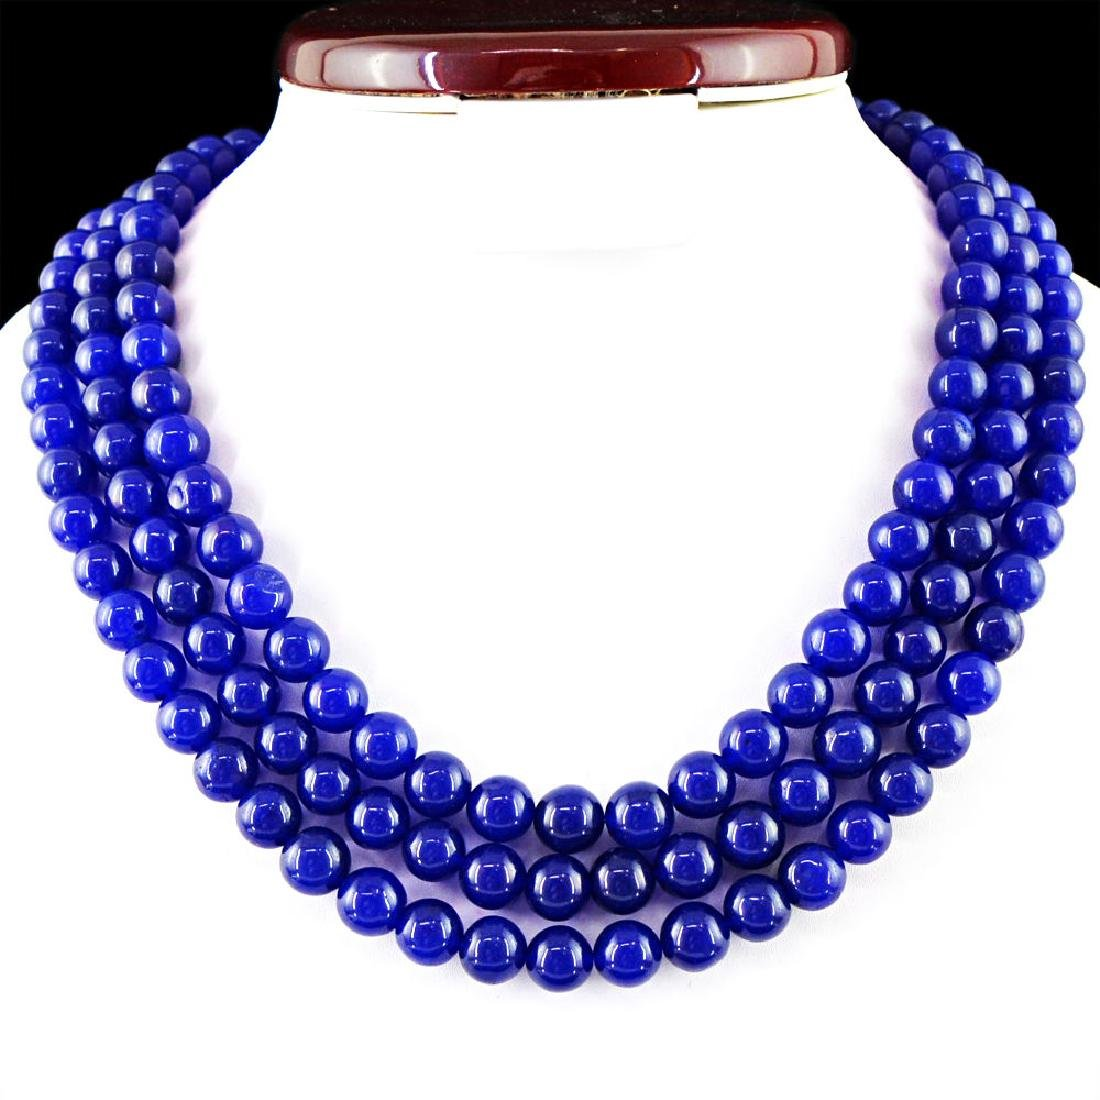 EARTH MINED BLUE SAPPHIRE 3 STARND ROUND BEADS NECKLACE